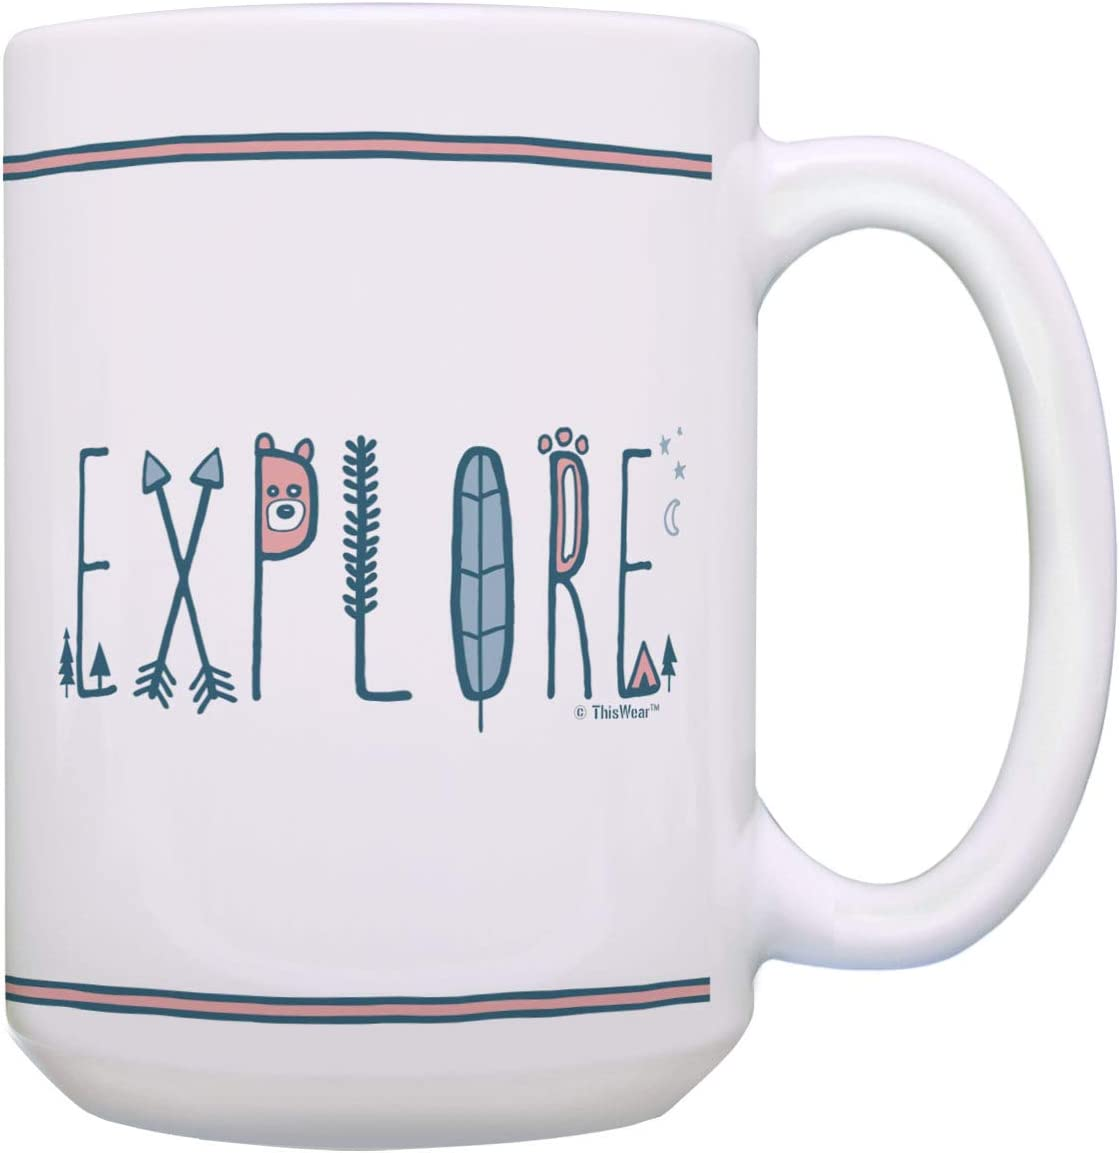 Amazon Com Camping Gifts Explore Coffee Mug Outdoor Word Art Hiking Mug Explore Gift Coffee Mug Tea Cup White Kitchen Dining